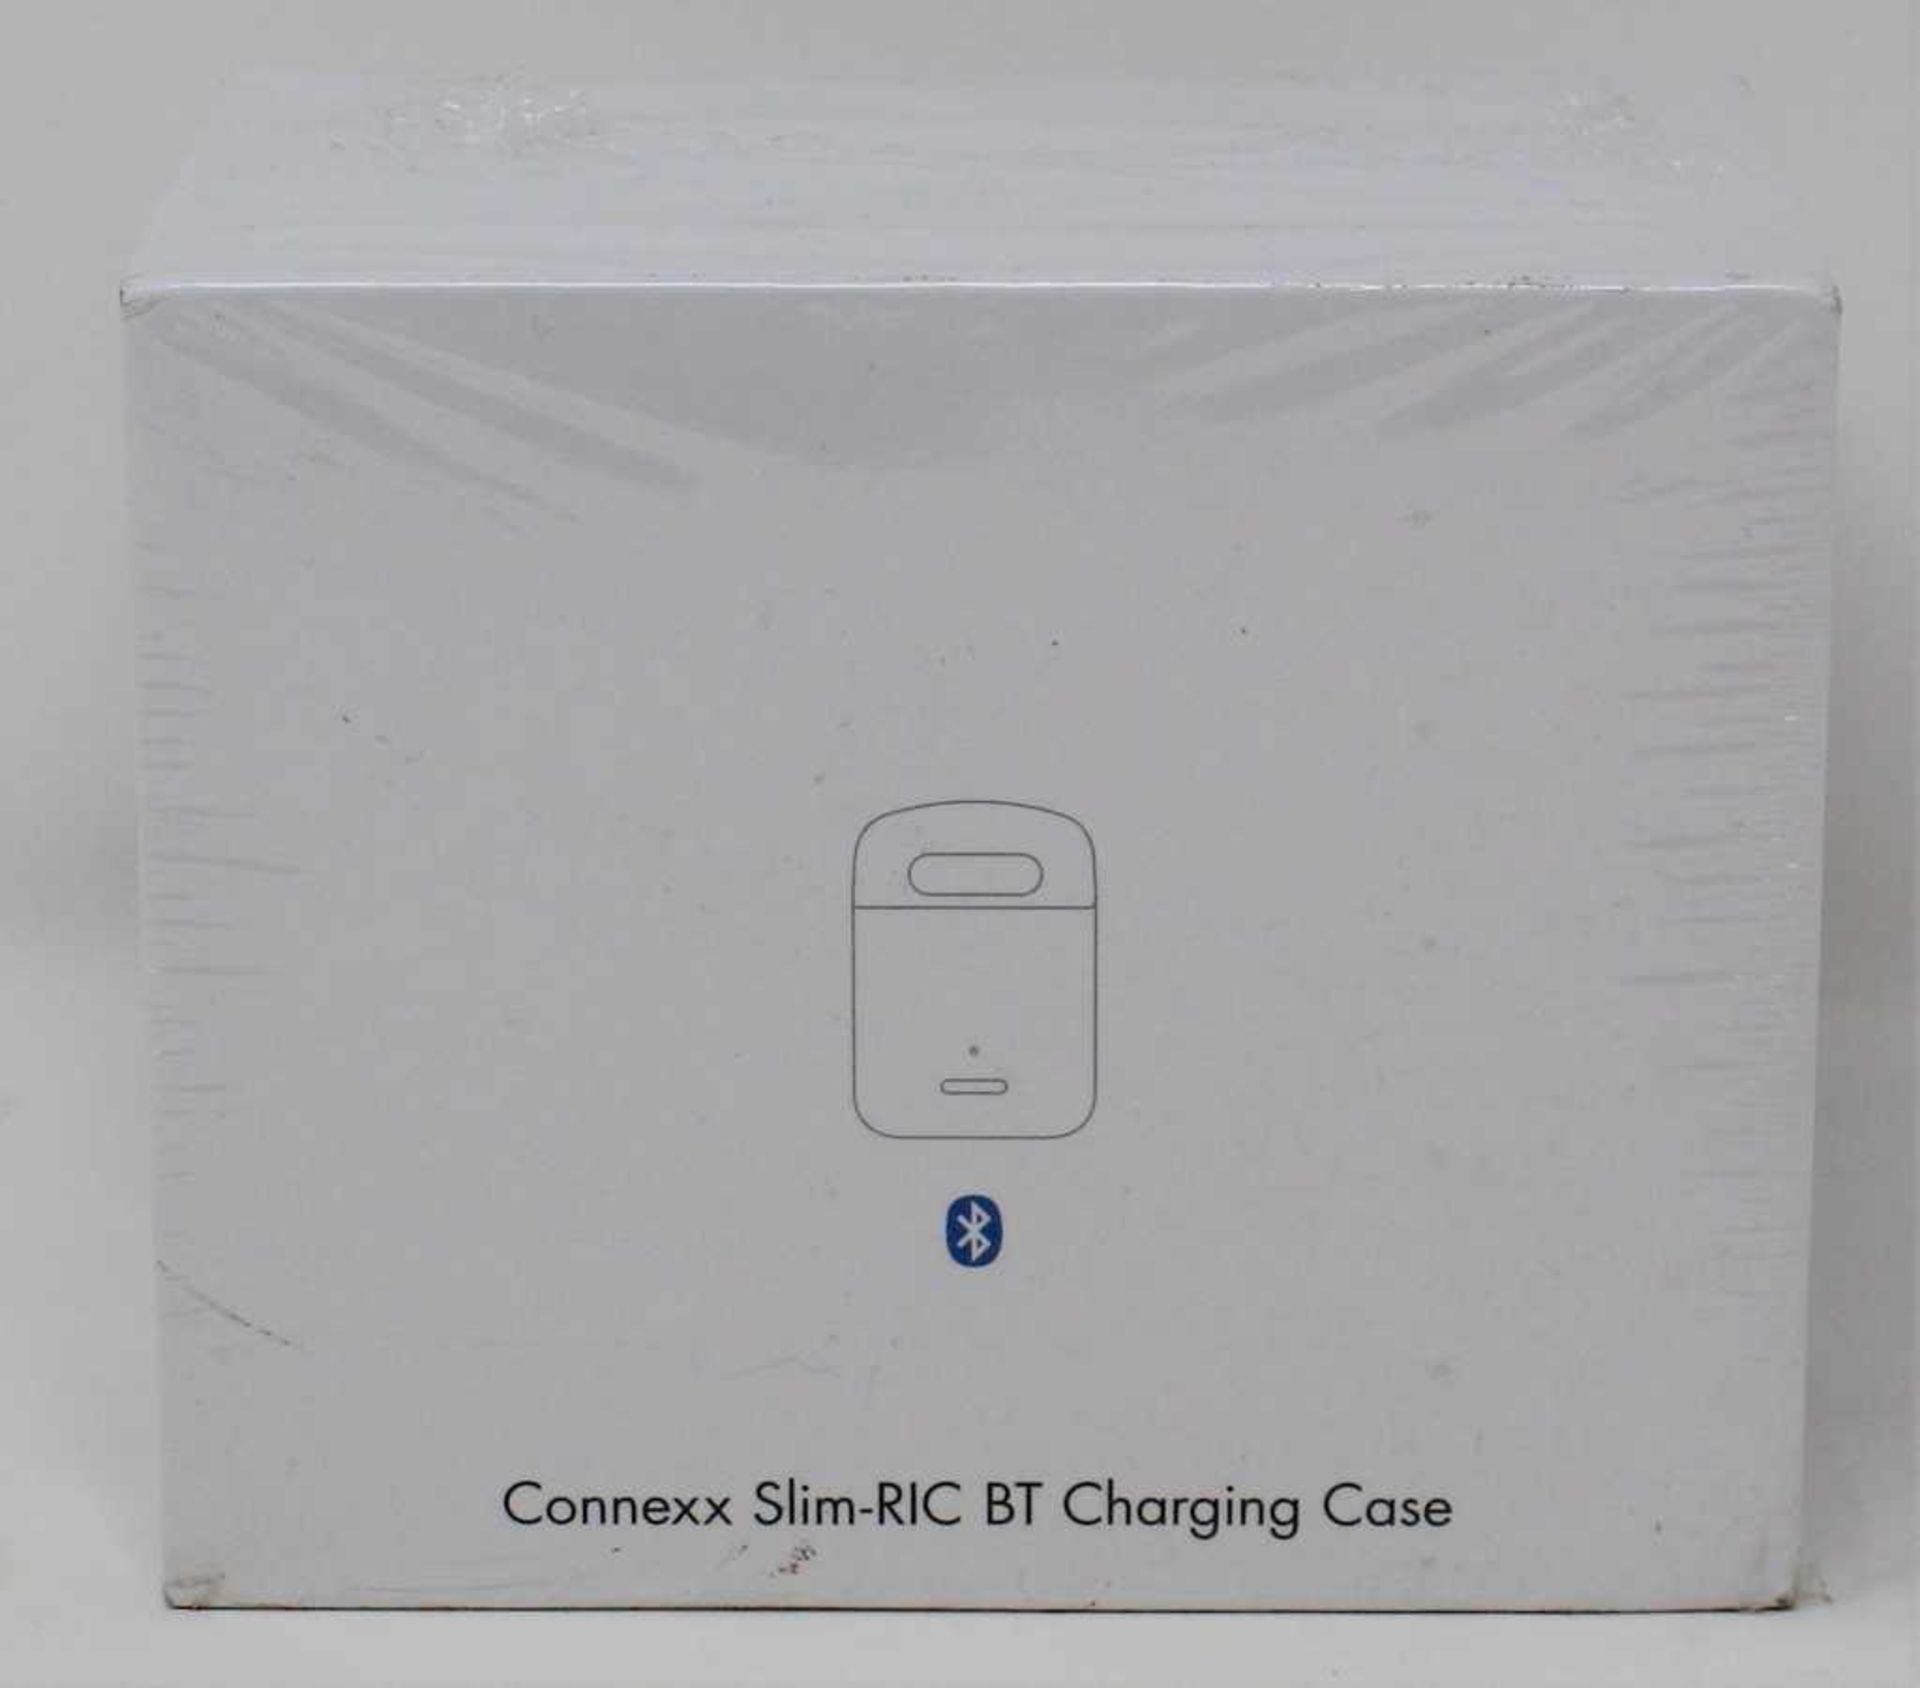 A boxed as new Connexx Slim-RIC BT Charging Case (REF: 10966368) (Box sealed).